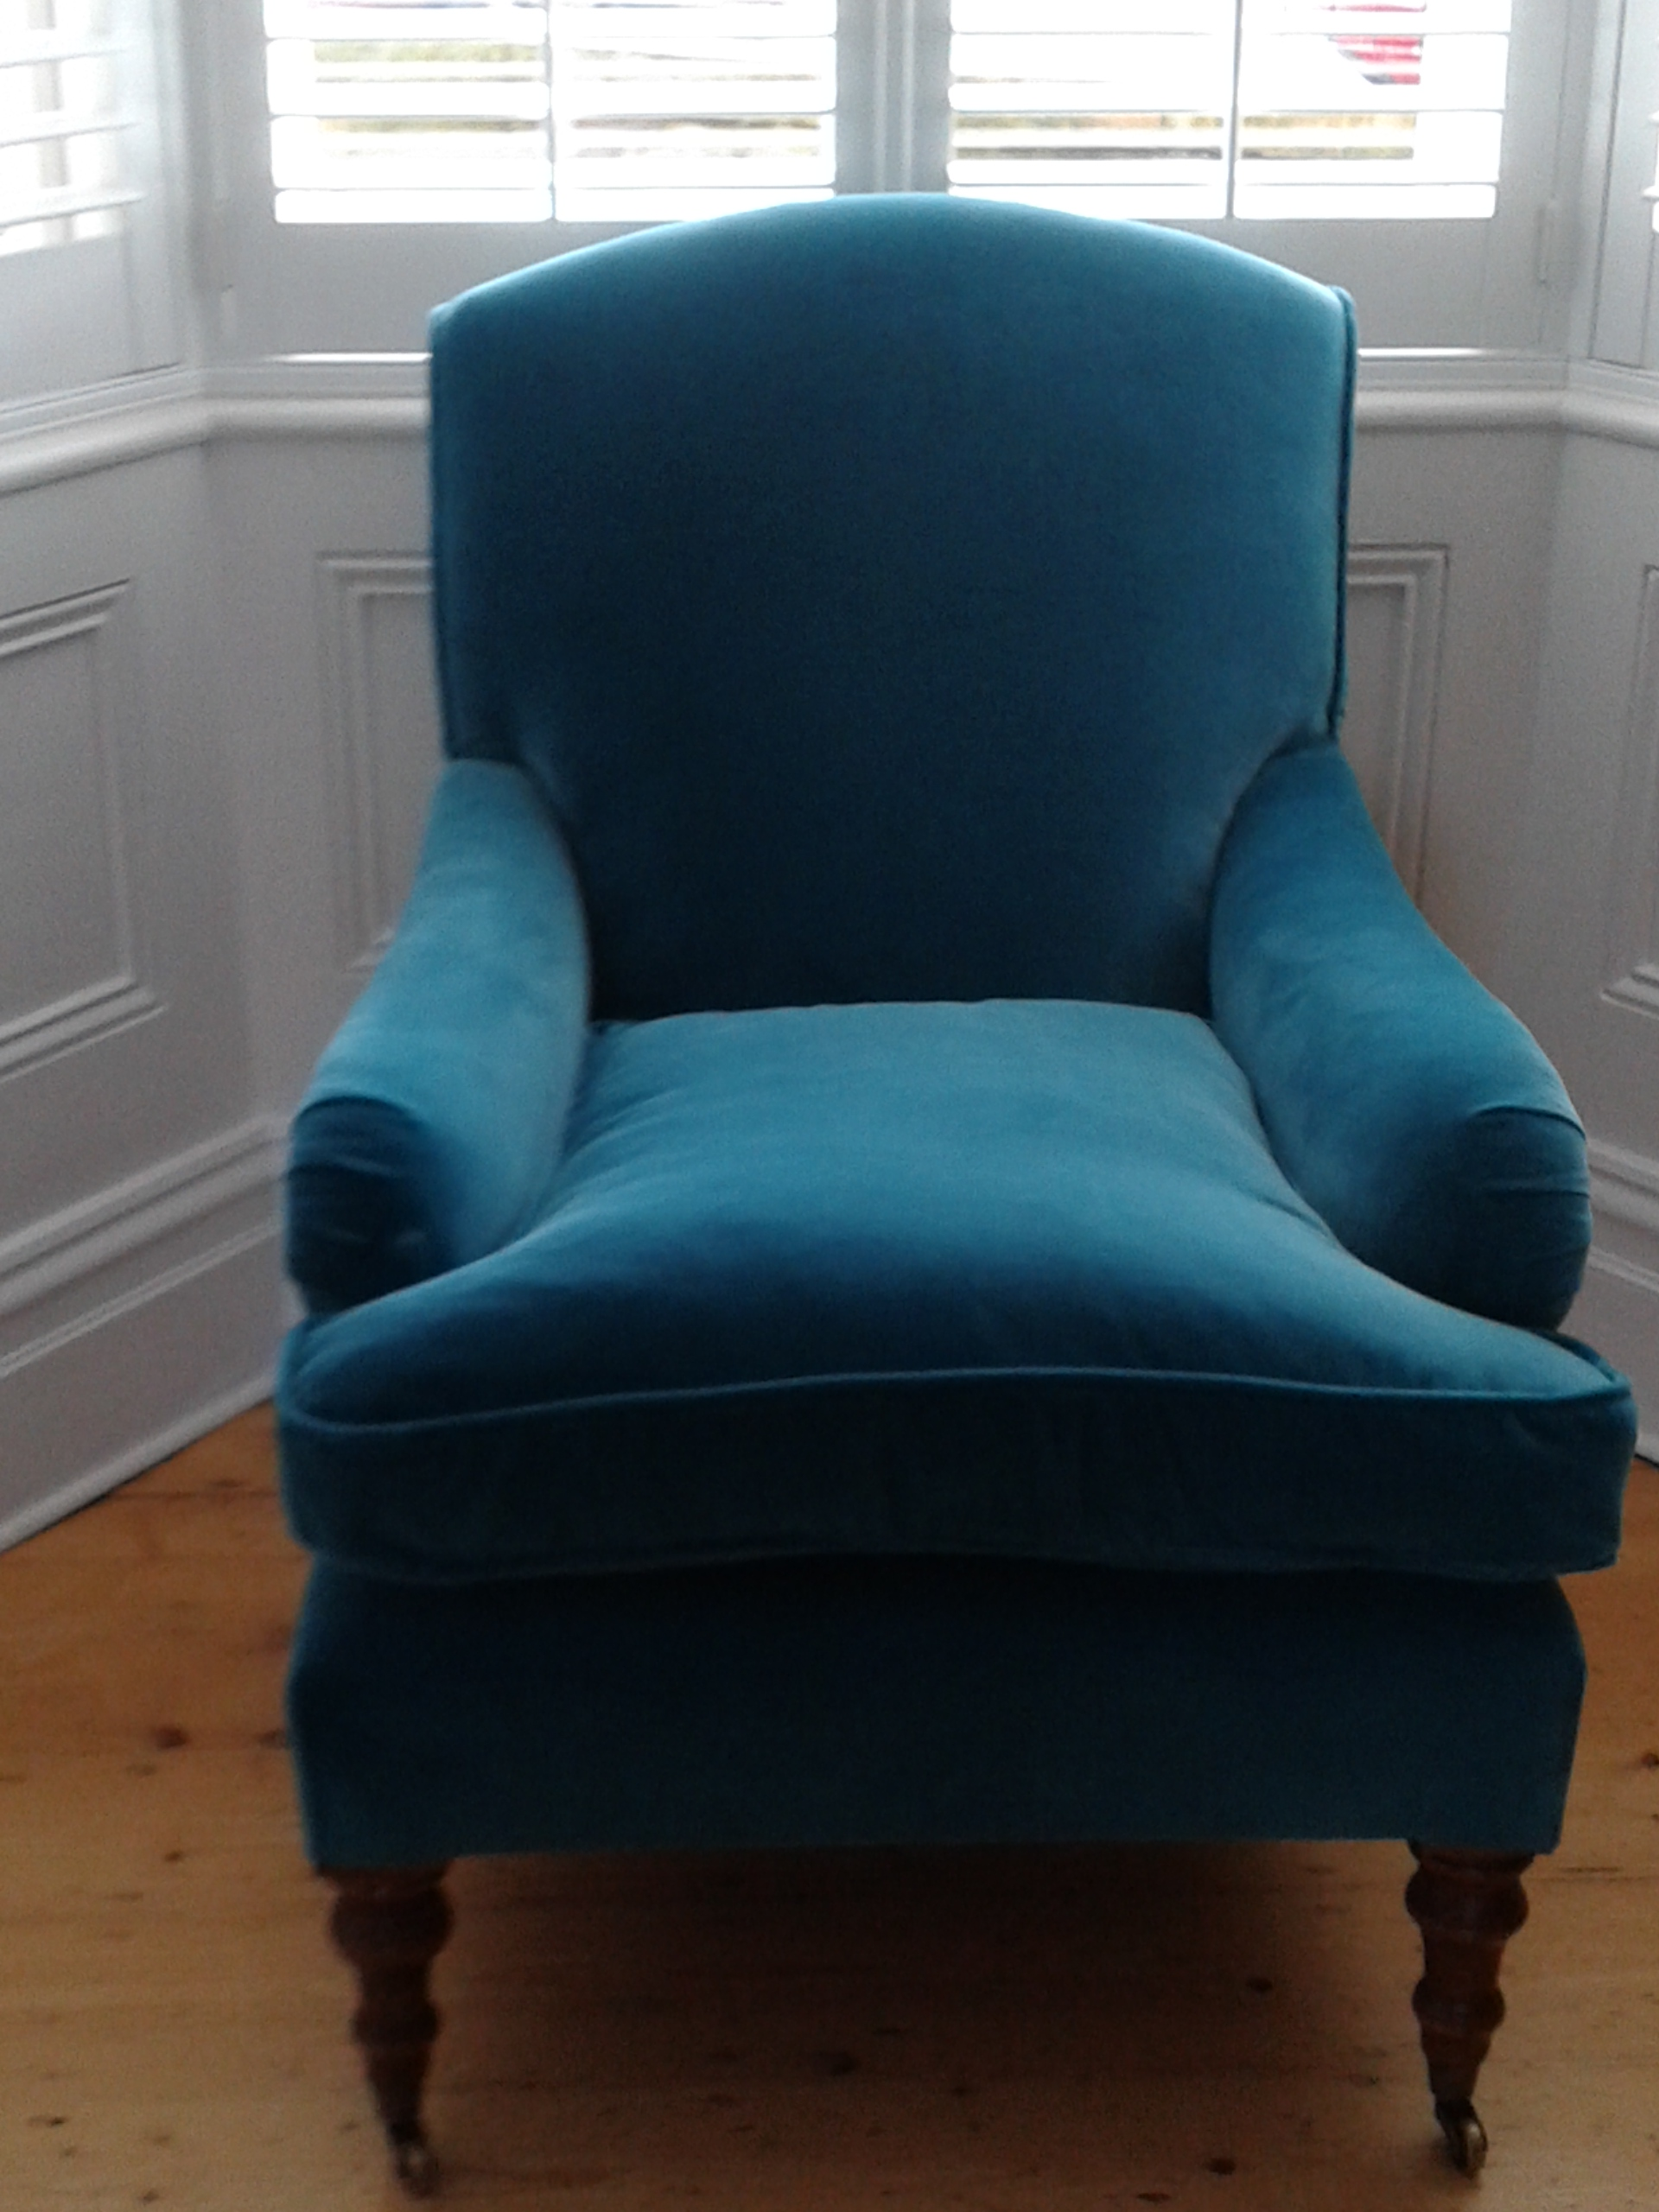 Upholstered Chairs Kate Blake Designs